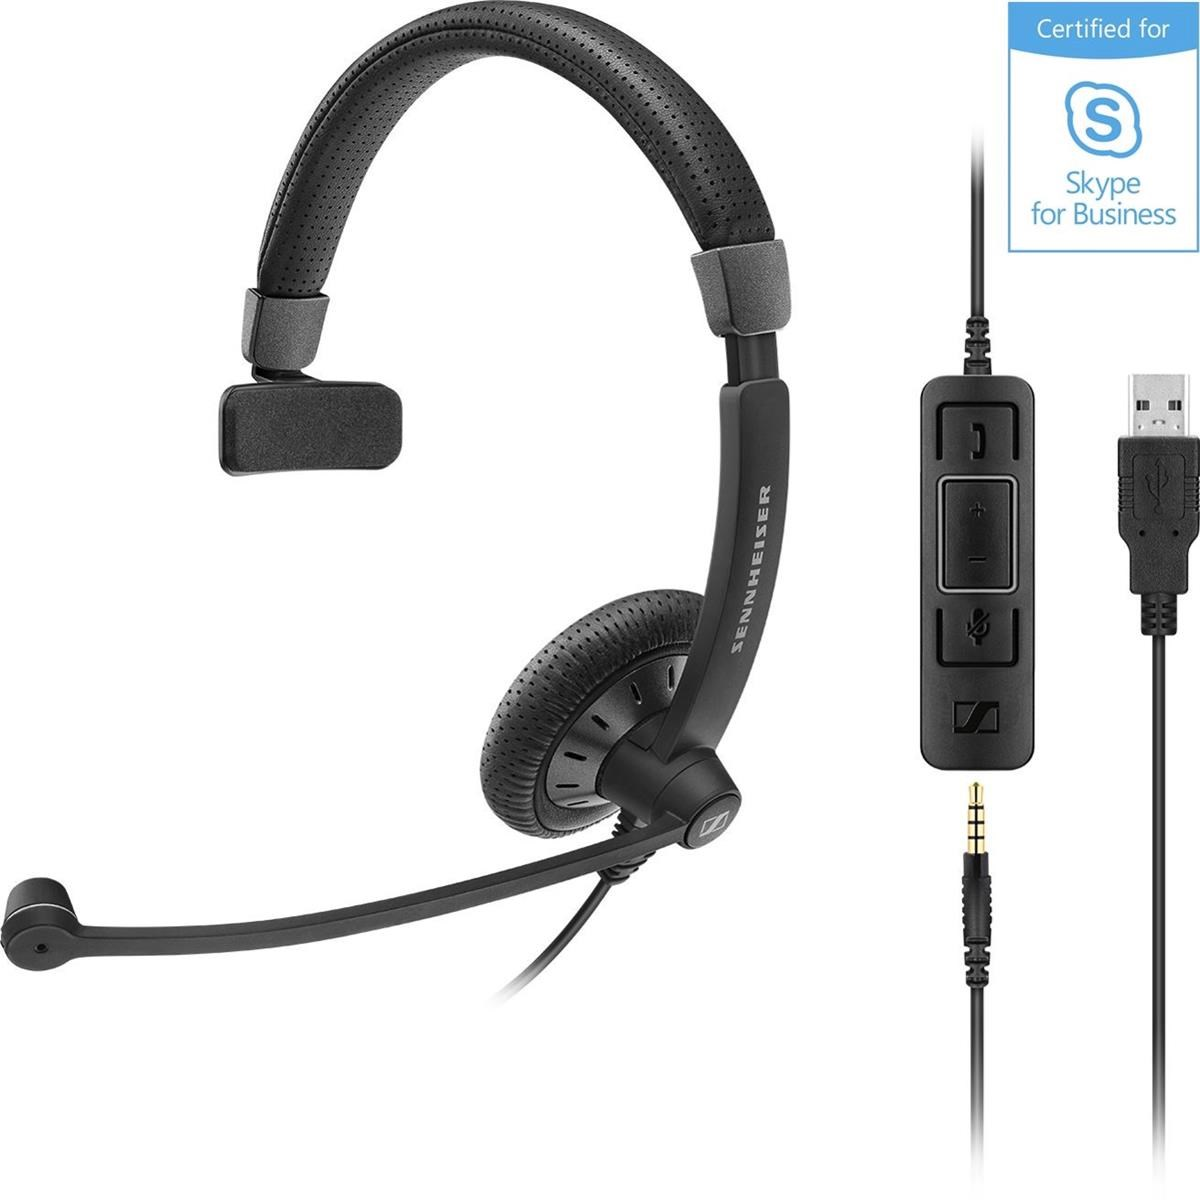 84b04fe6ddb Sennheiser Culture Plus Mobile SC 75 USB MS Binaural Double Sided Wired  Headset with Noise Cancelling